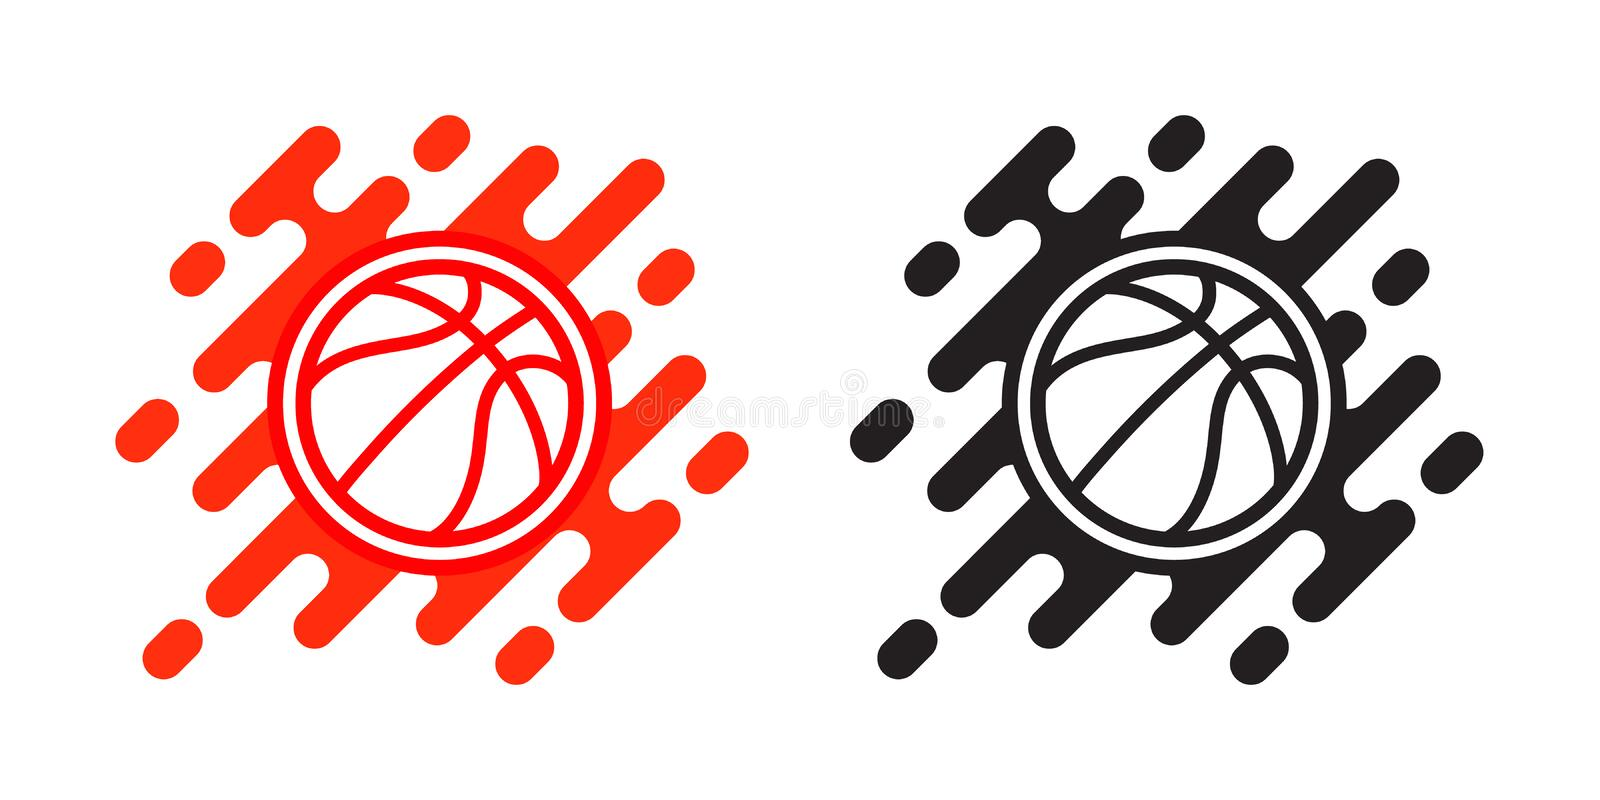 Icône de vecteur de boule de basket-ball d'isolement sur le blanc Conception de logo de basket-ball Illustration d'icône extérieu illustration libre de droits